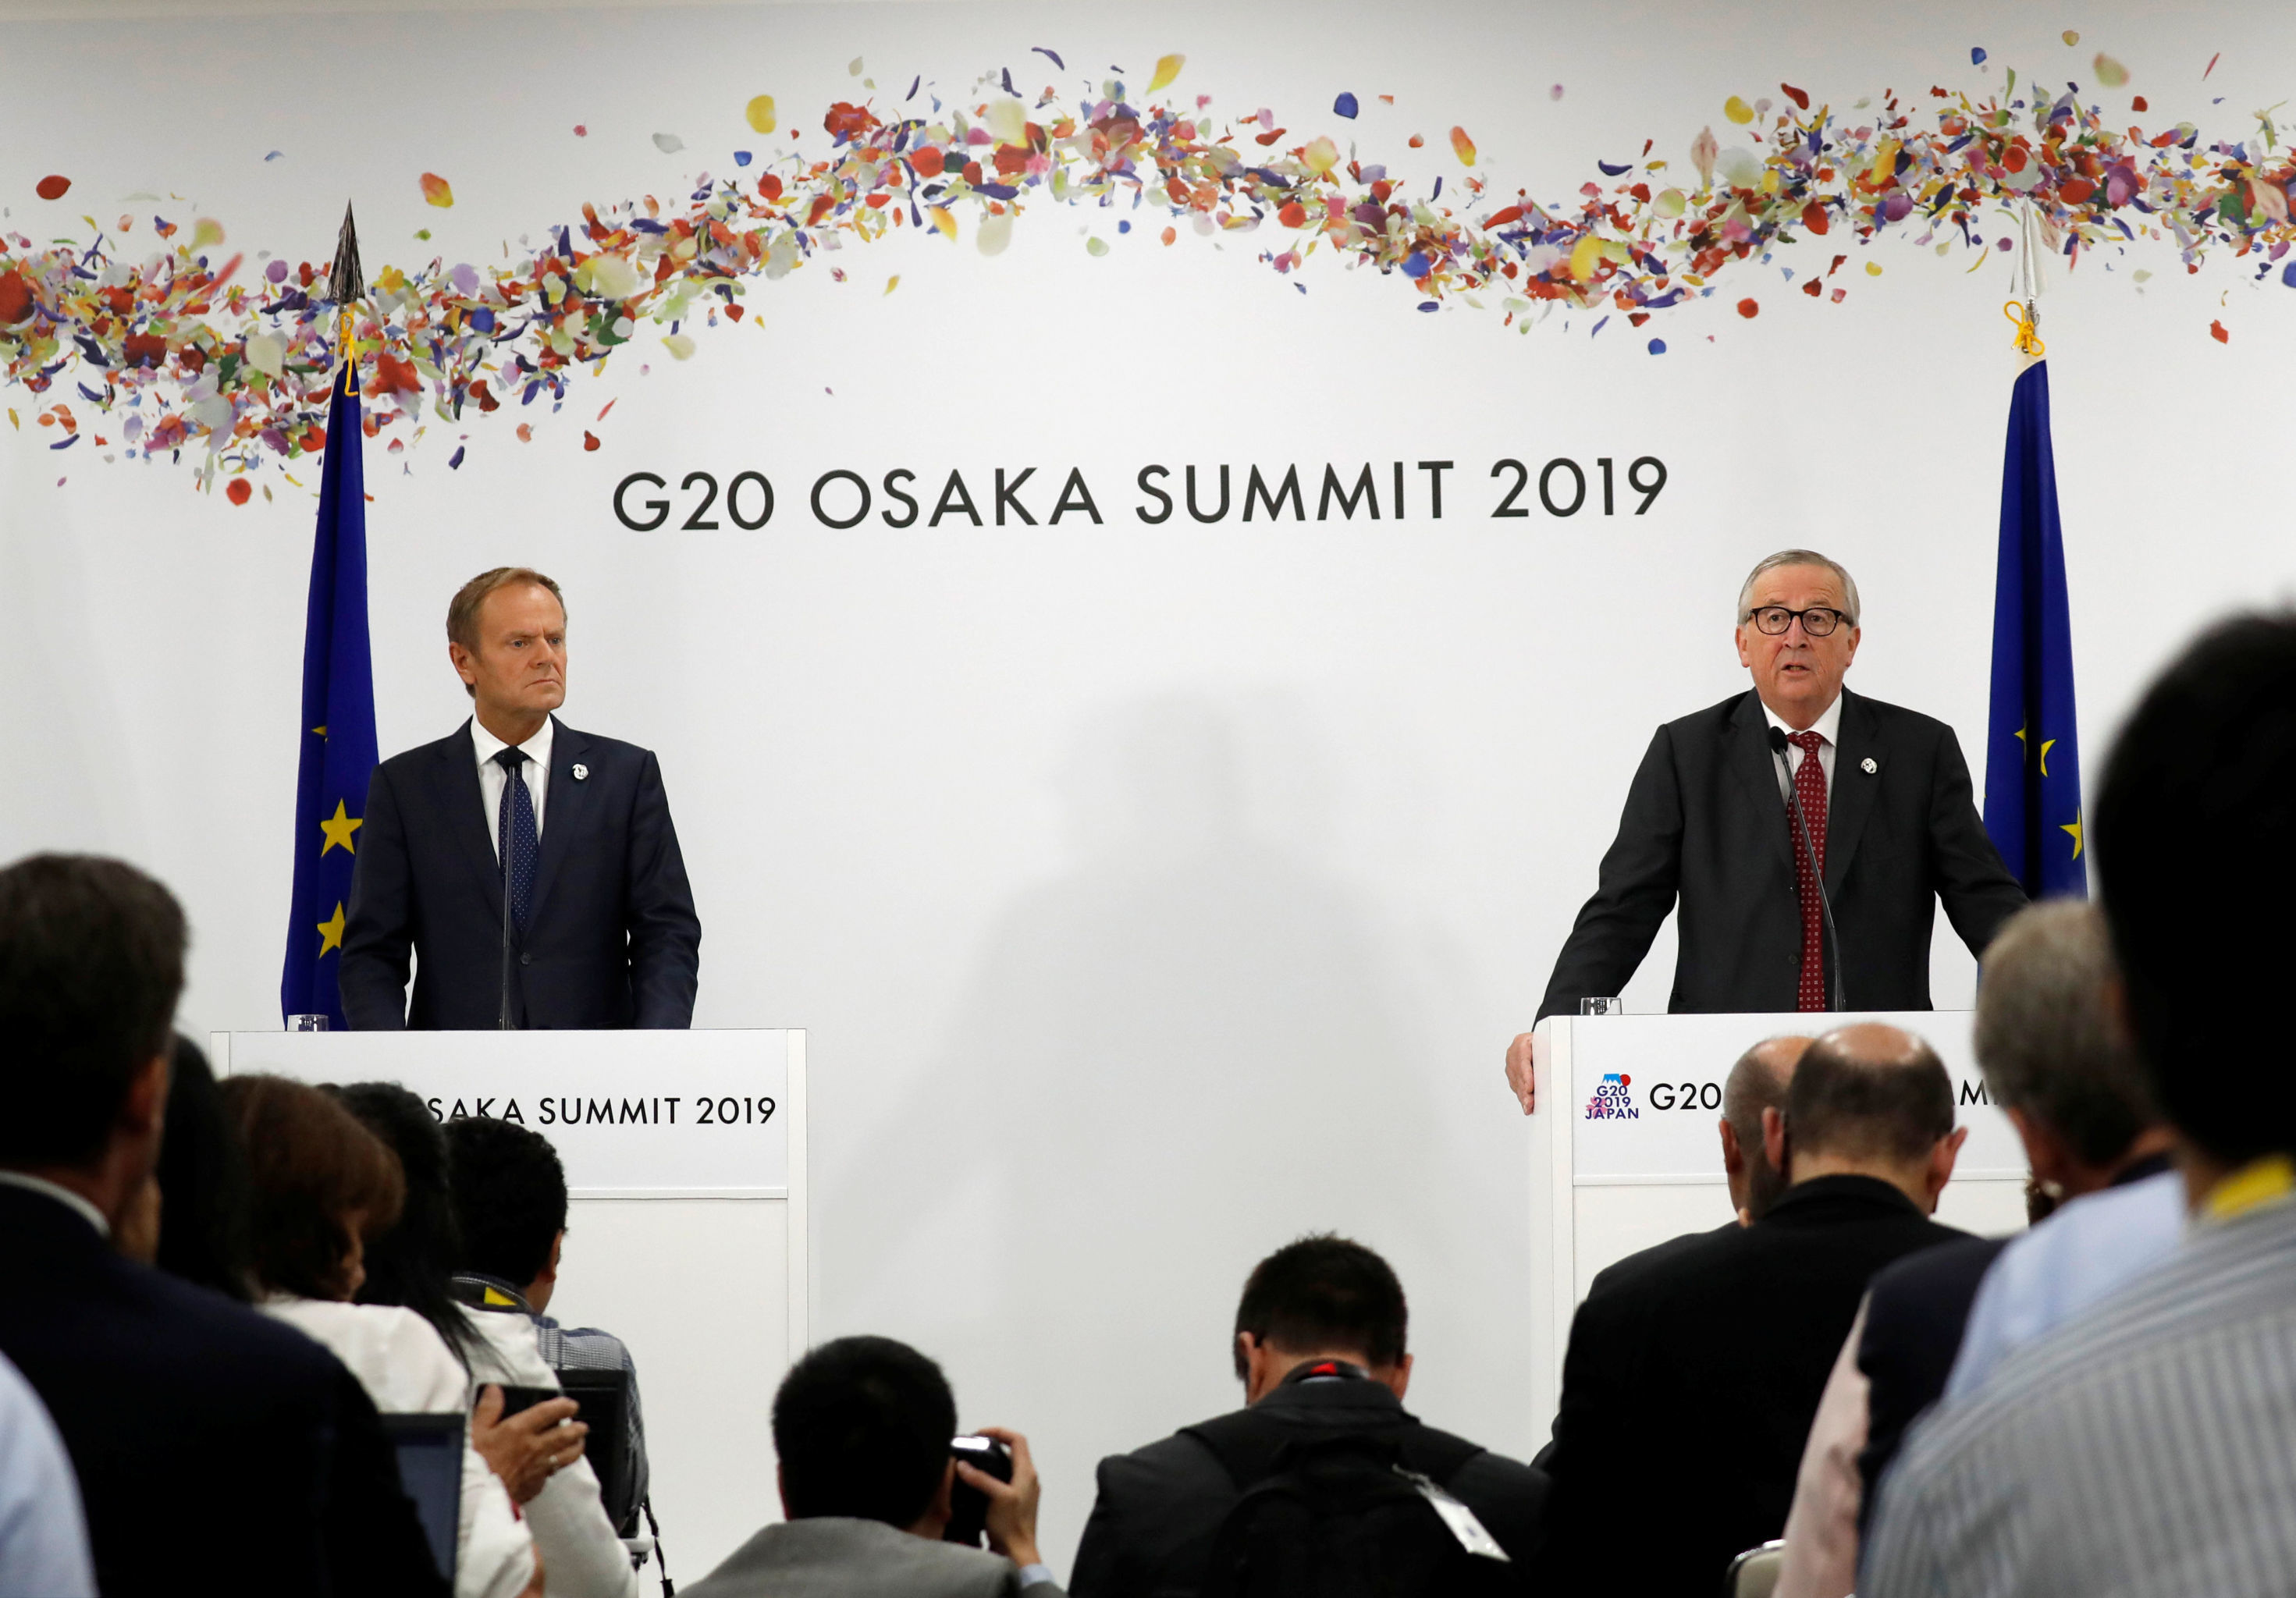 European Commission President Jean-Claude Juncker and European Council President Donald Tusk attend a news conference at the G20 leaders summit in Osaka, Japan, June 28, 2019